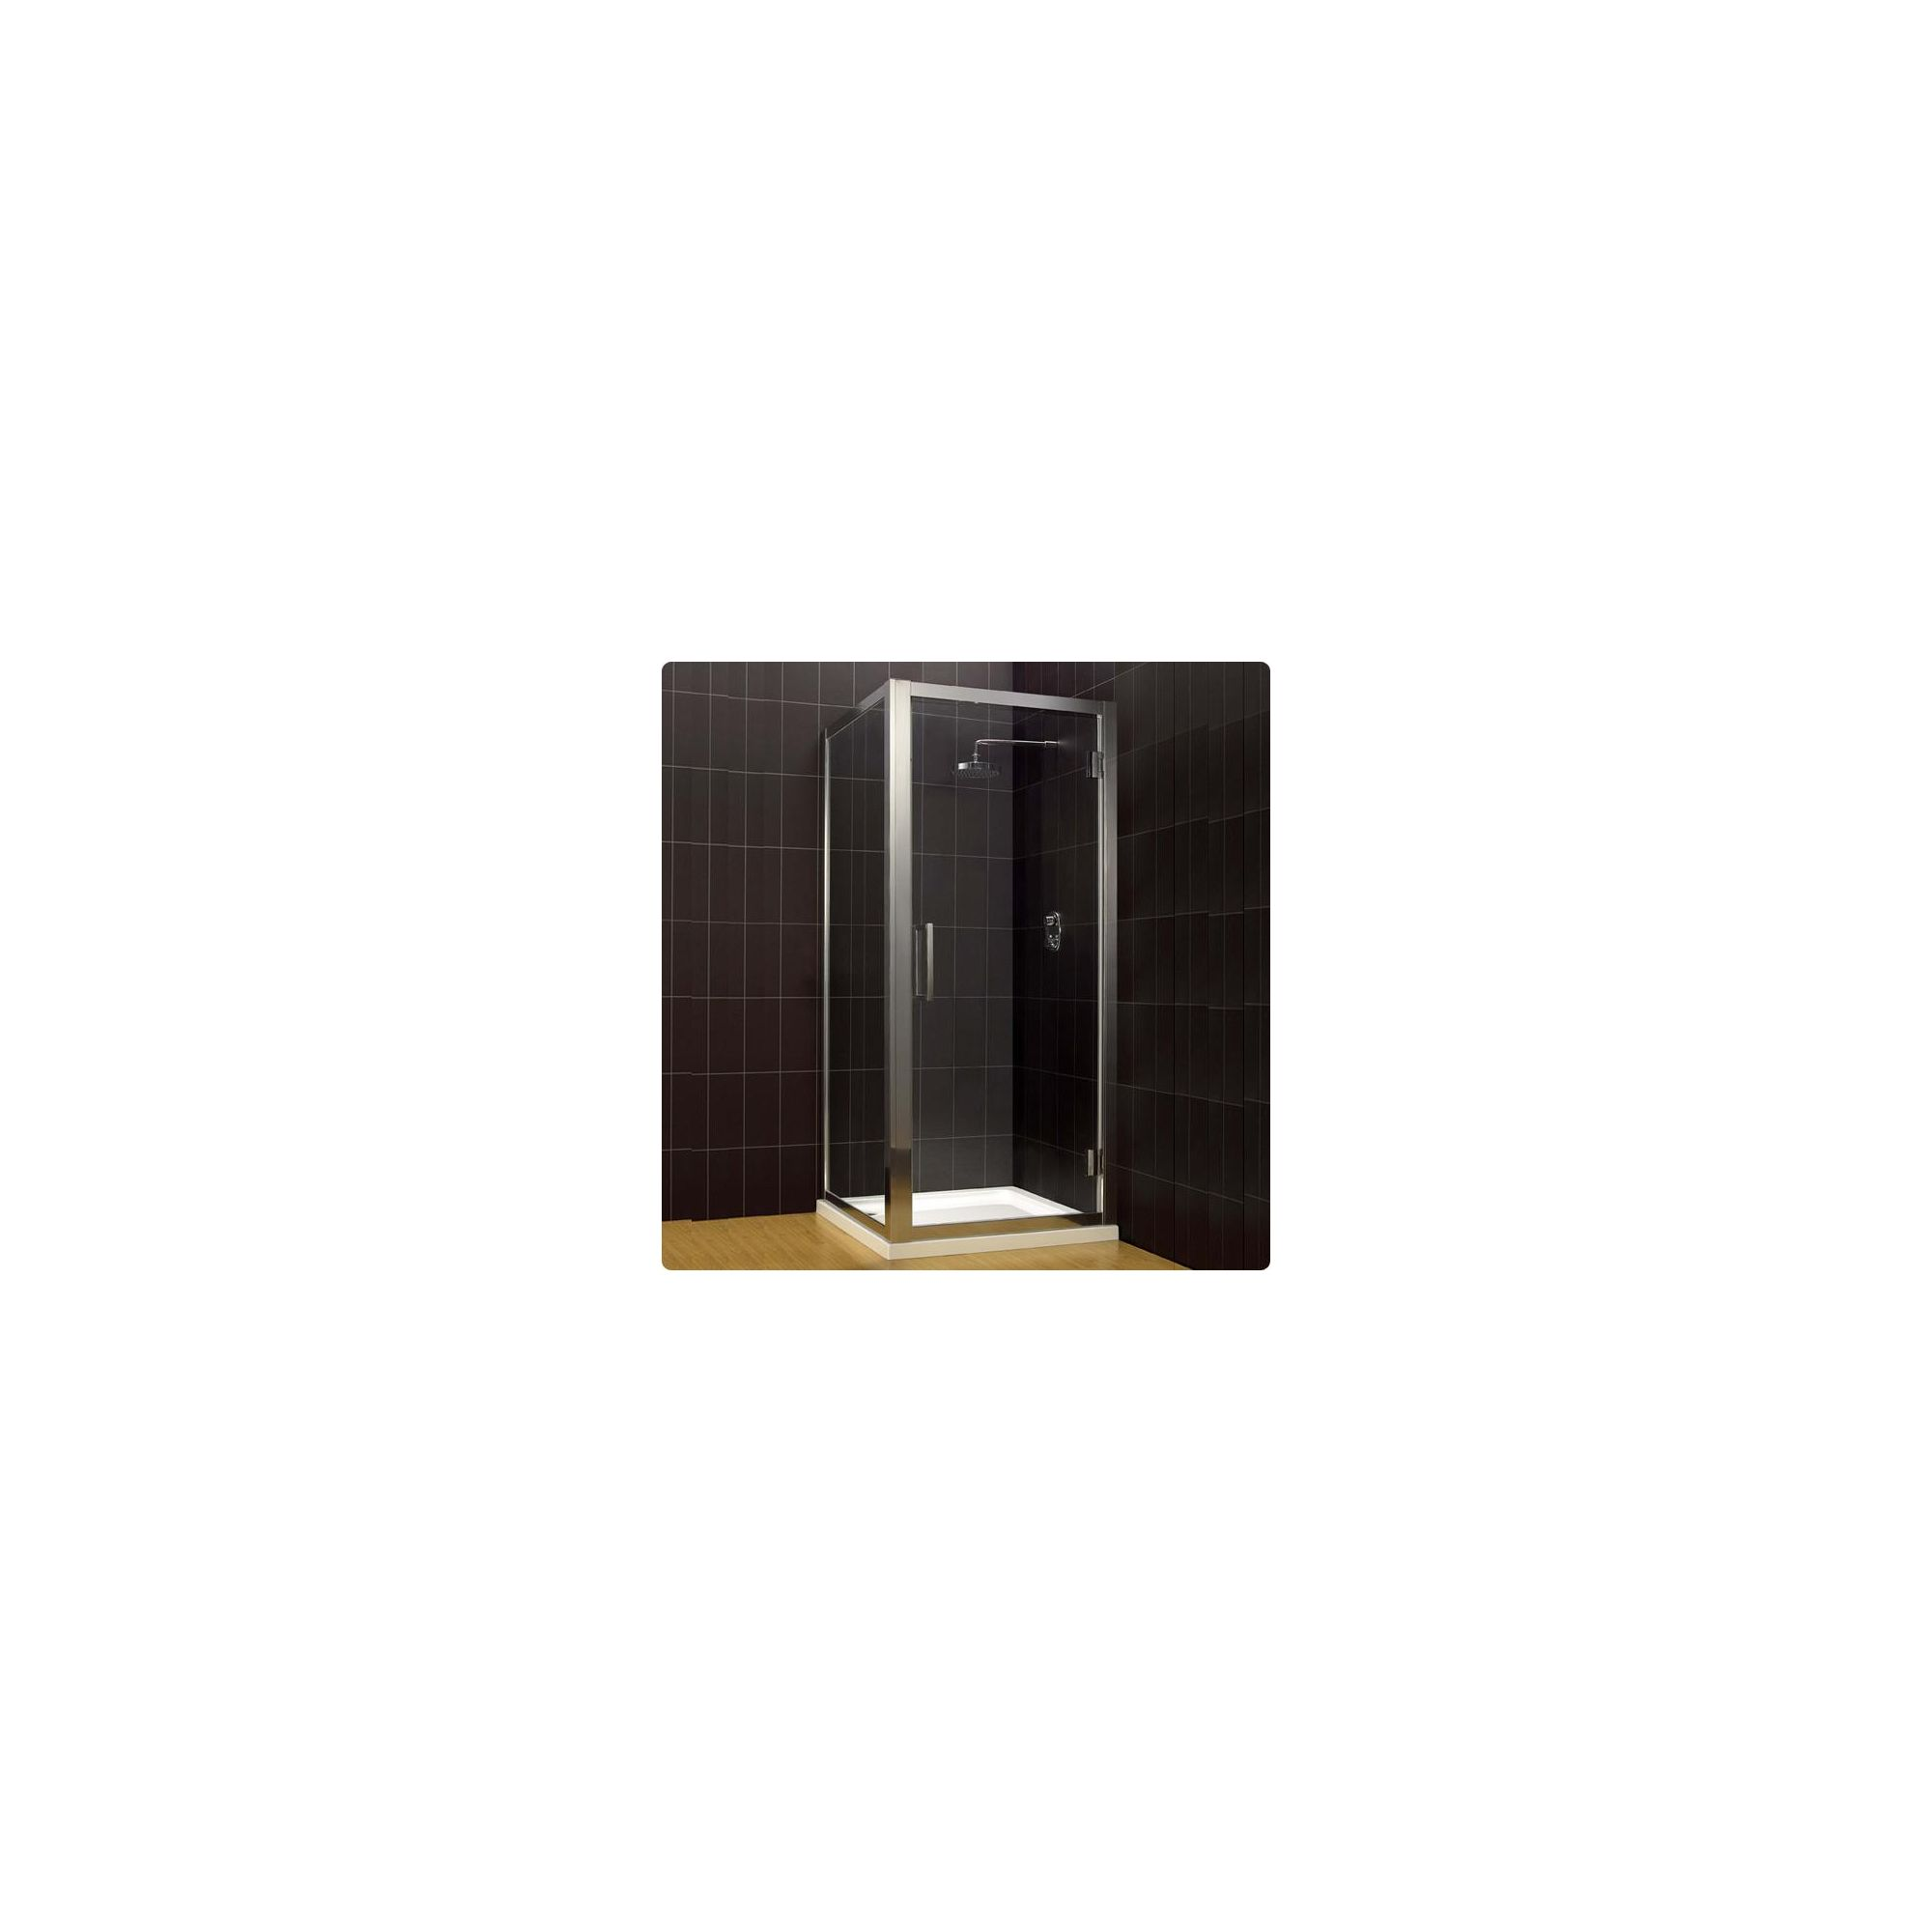 Duchy Supreme Silver Hinged Door Shower Enclosure, 760mm x 760mm, Standard Tray, 8mm Glass at Tesco Direct